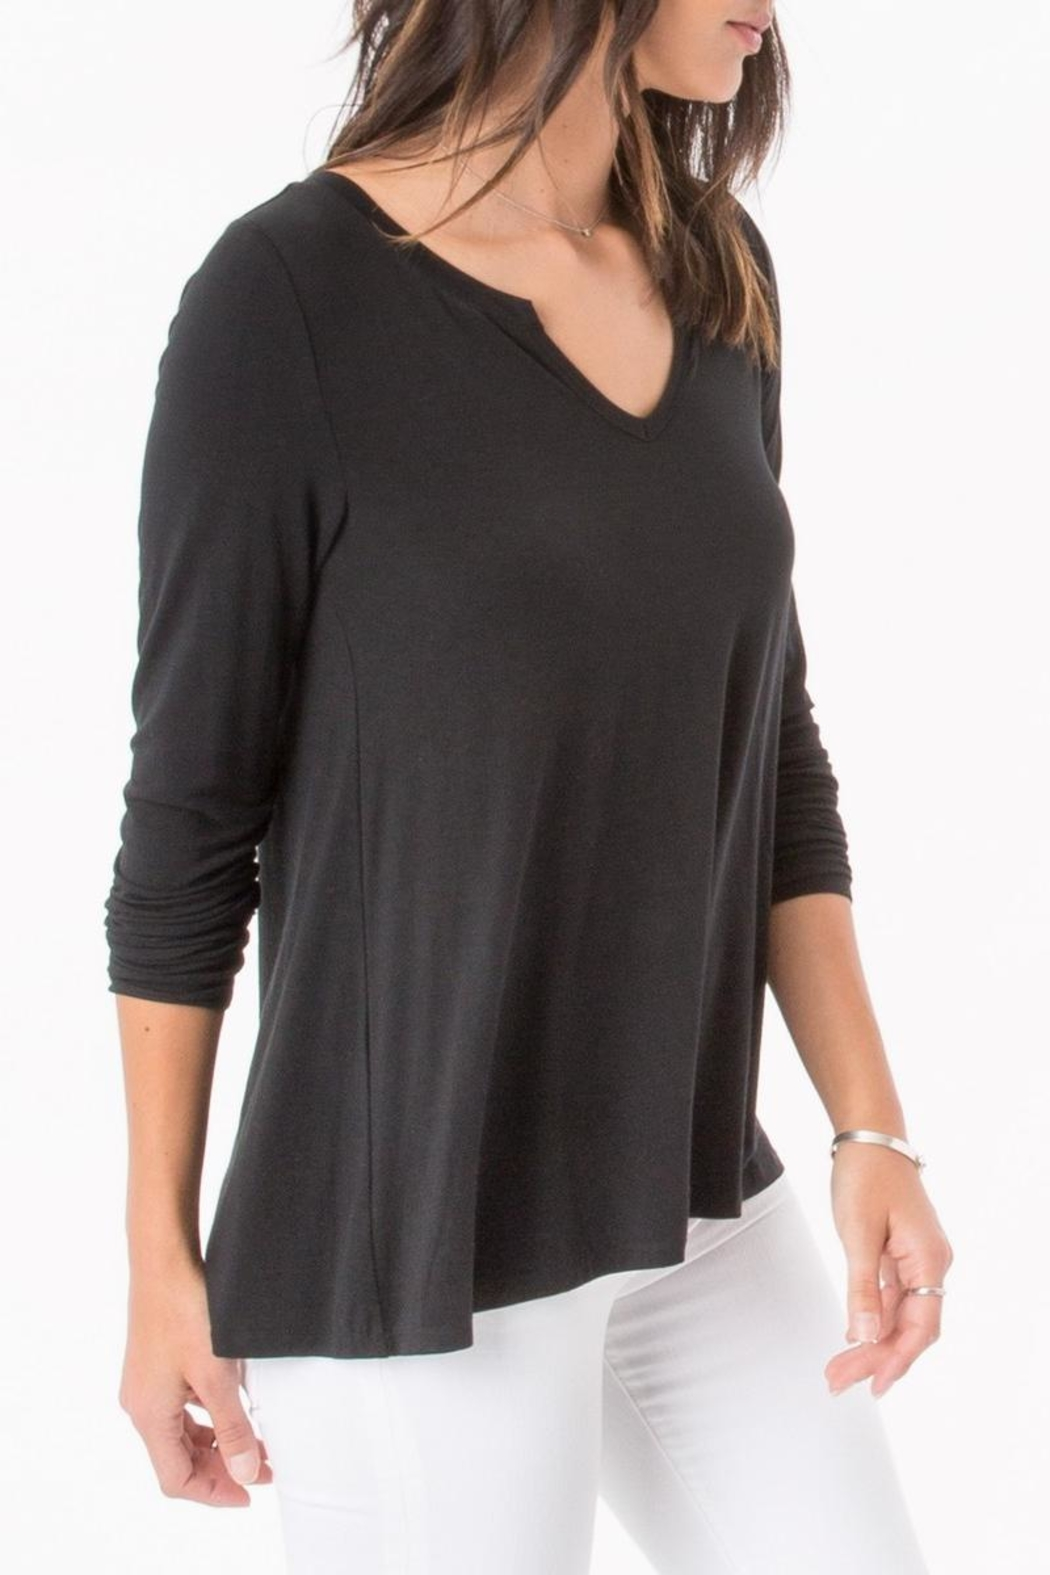 z supply Split Neck Top - Front Full Image